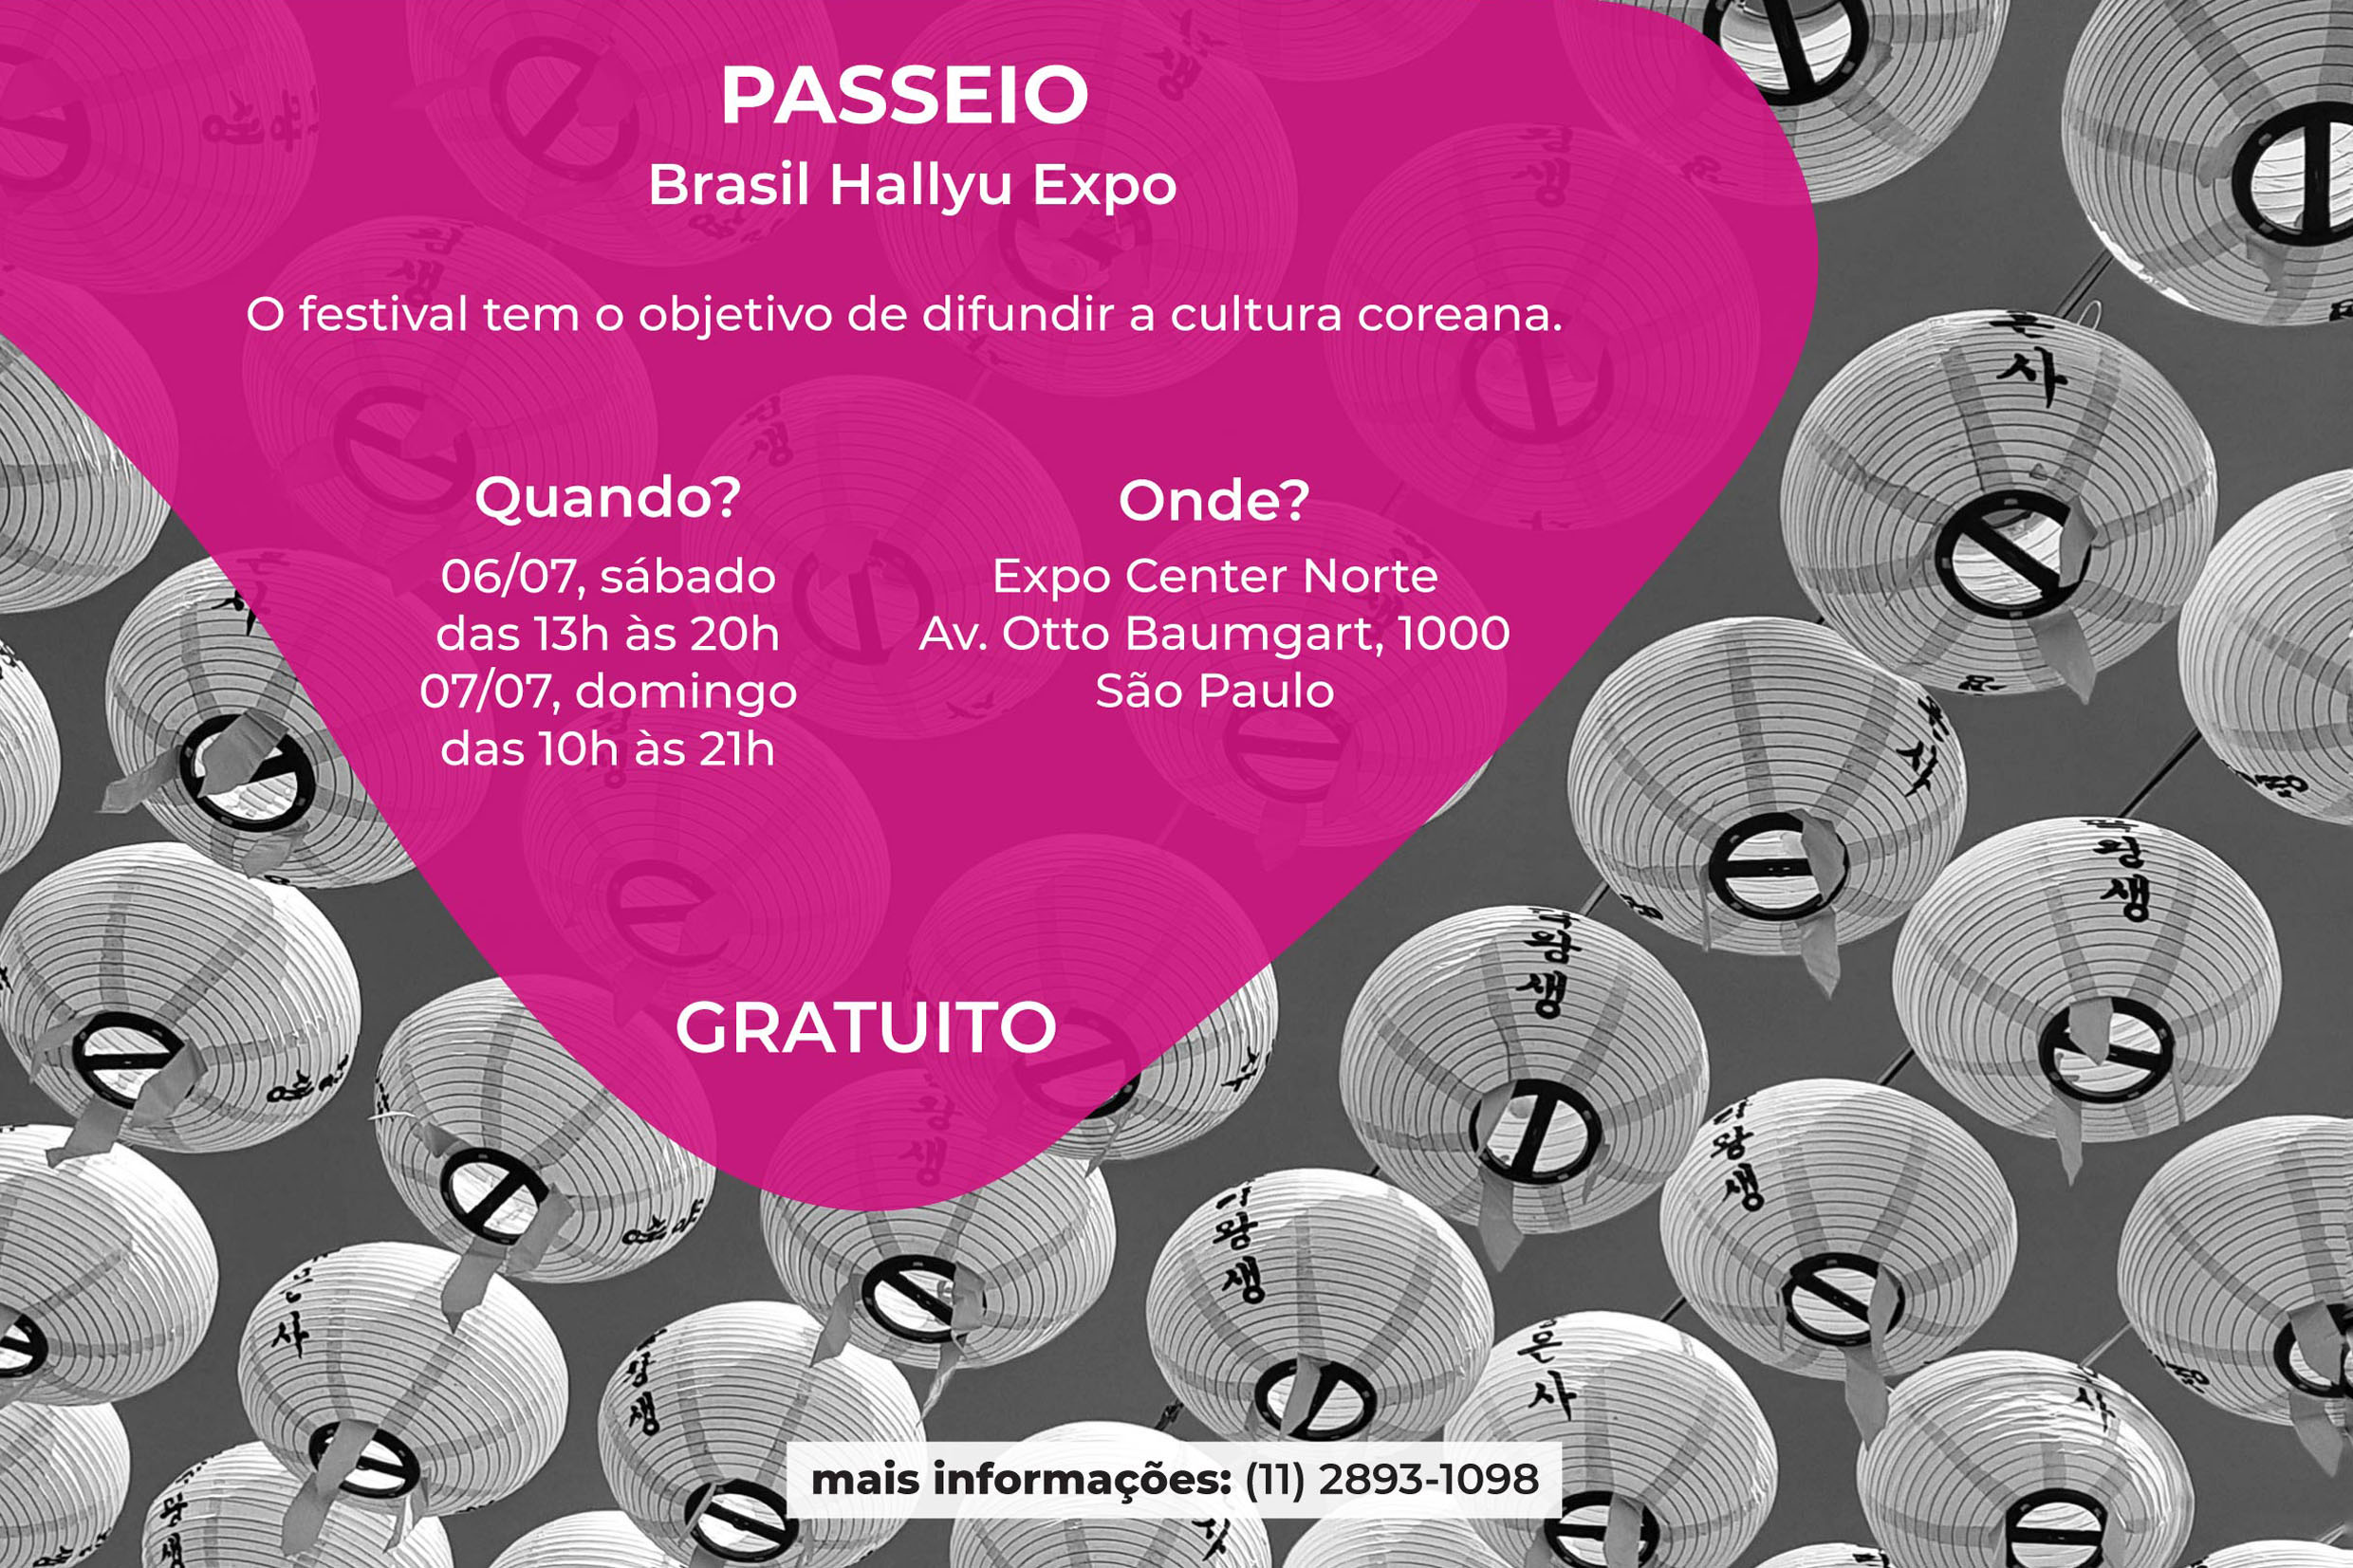 Agência Alesp<a style='float:right' href='https://www3.al.sp.gov.br/repositorio/noticia/N-07-2019/fg236872.jpg' target=_blank><img src='/_img/material-file-download-white.png' width='14px' alt='Clique para baixar a imagem'></a>